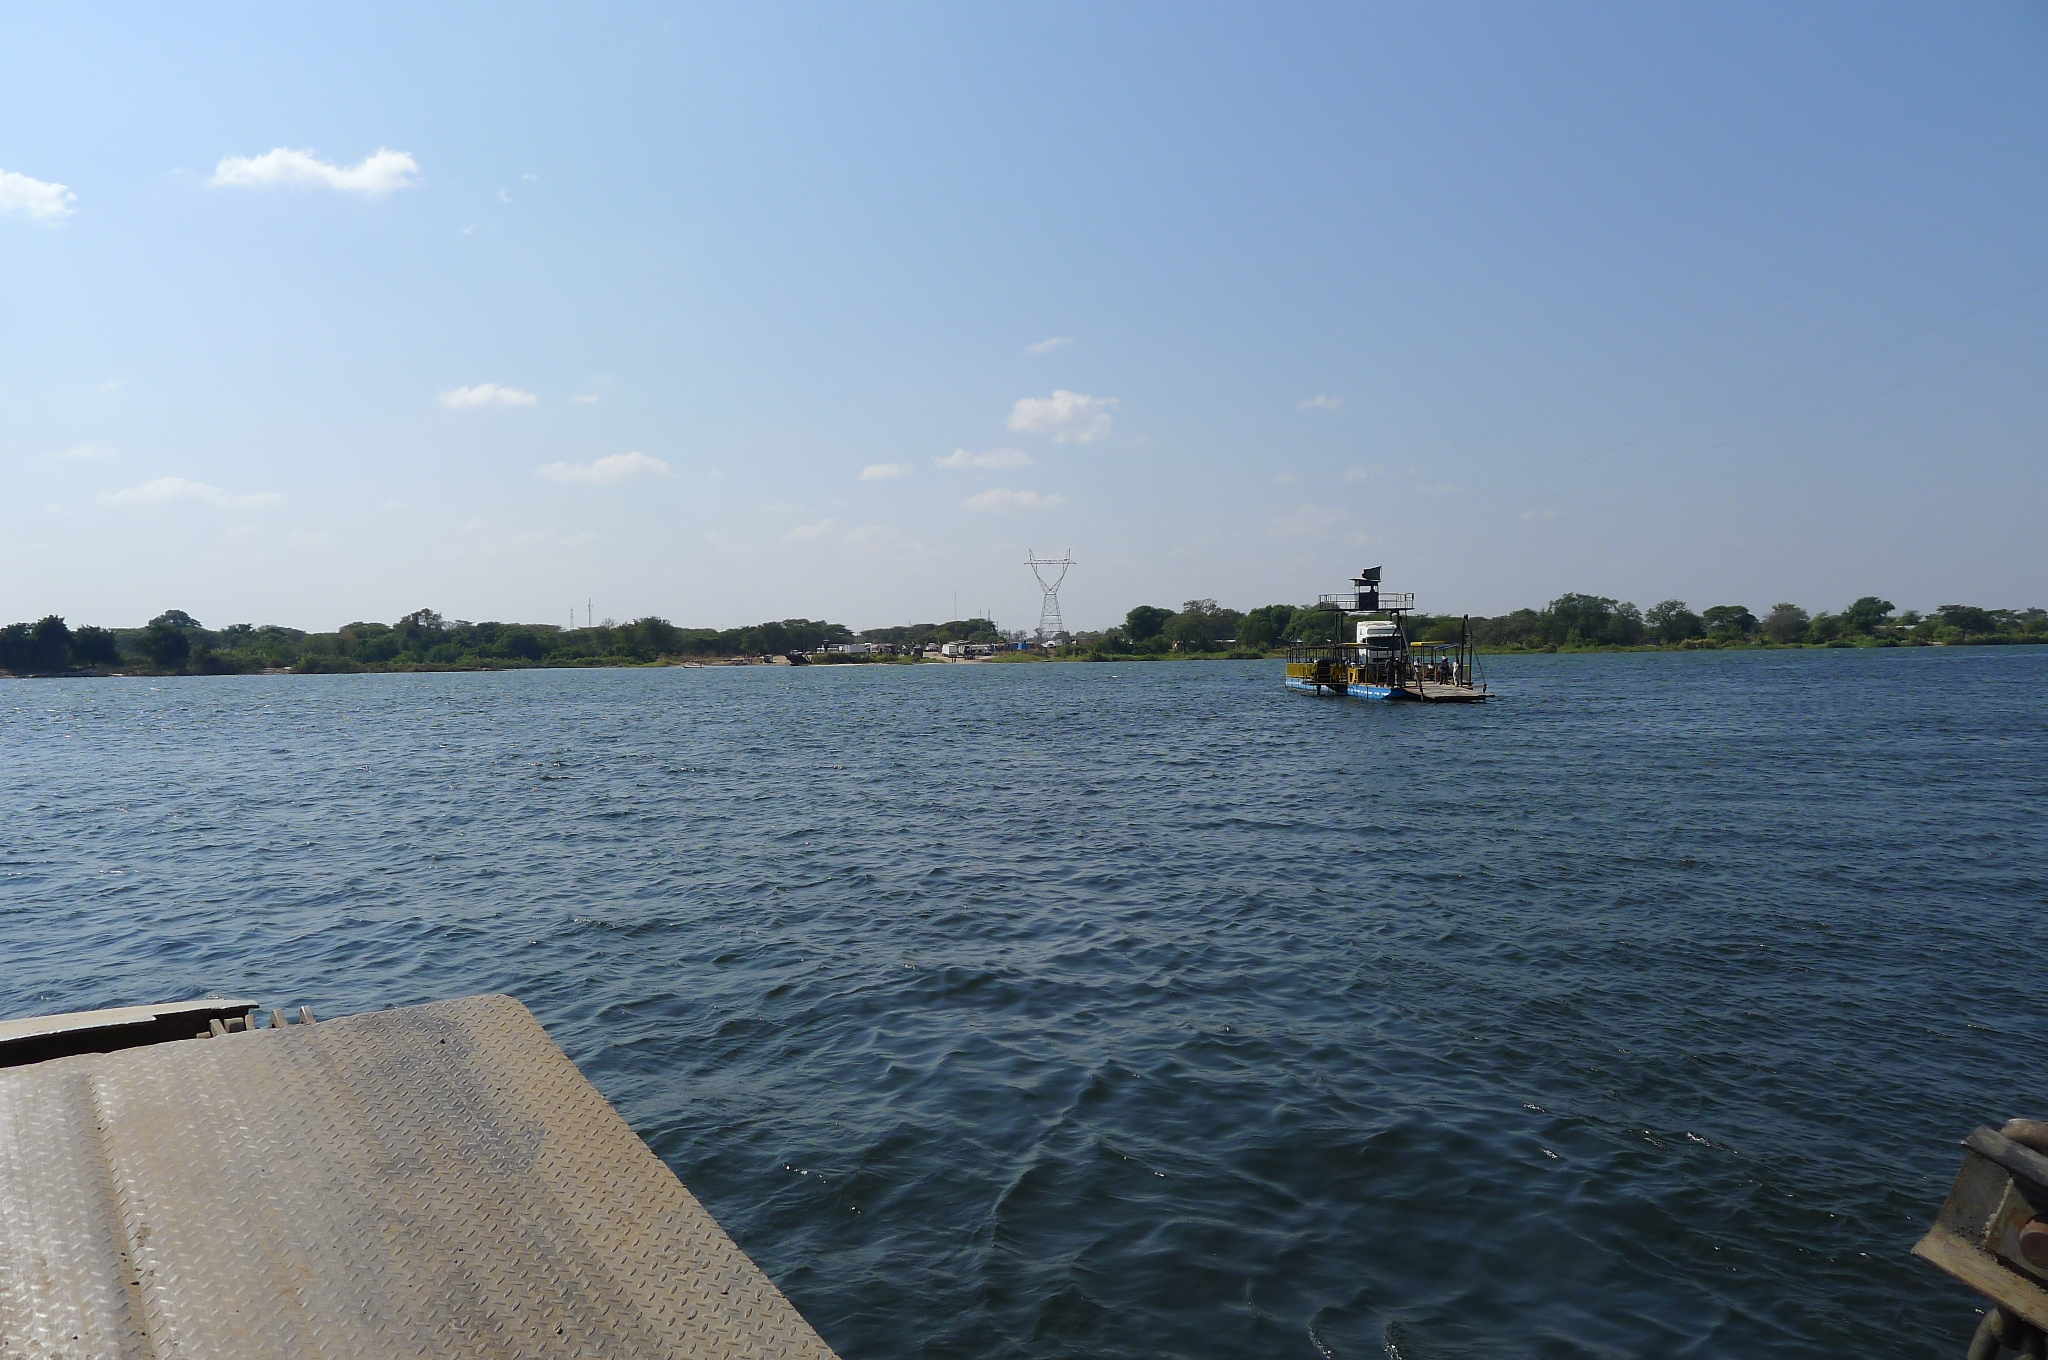 Crossing the Zambezi